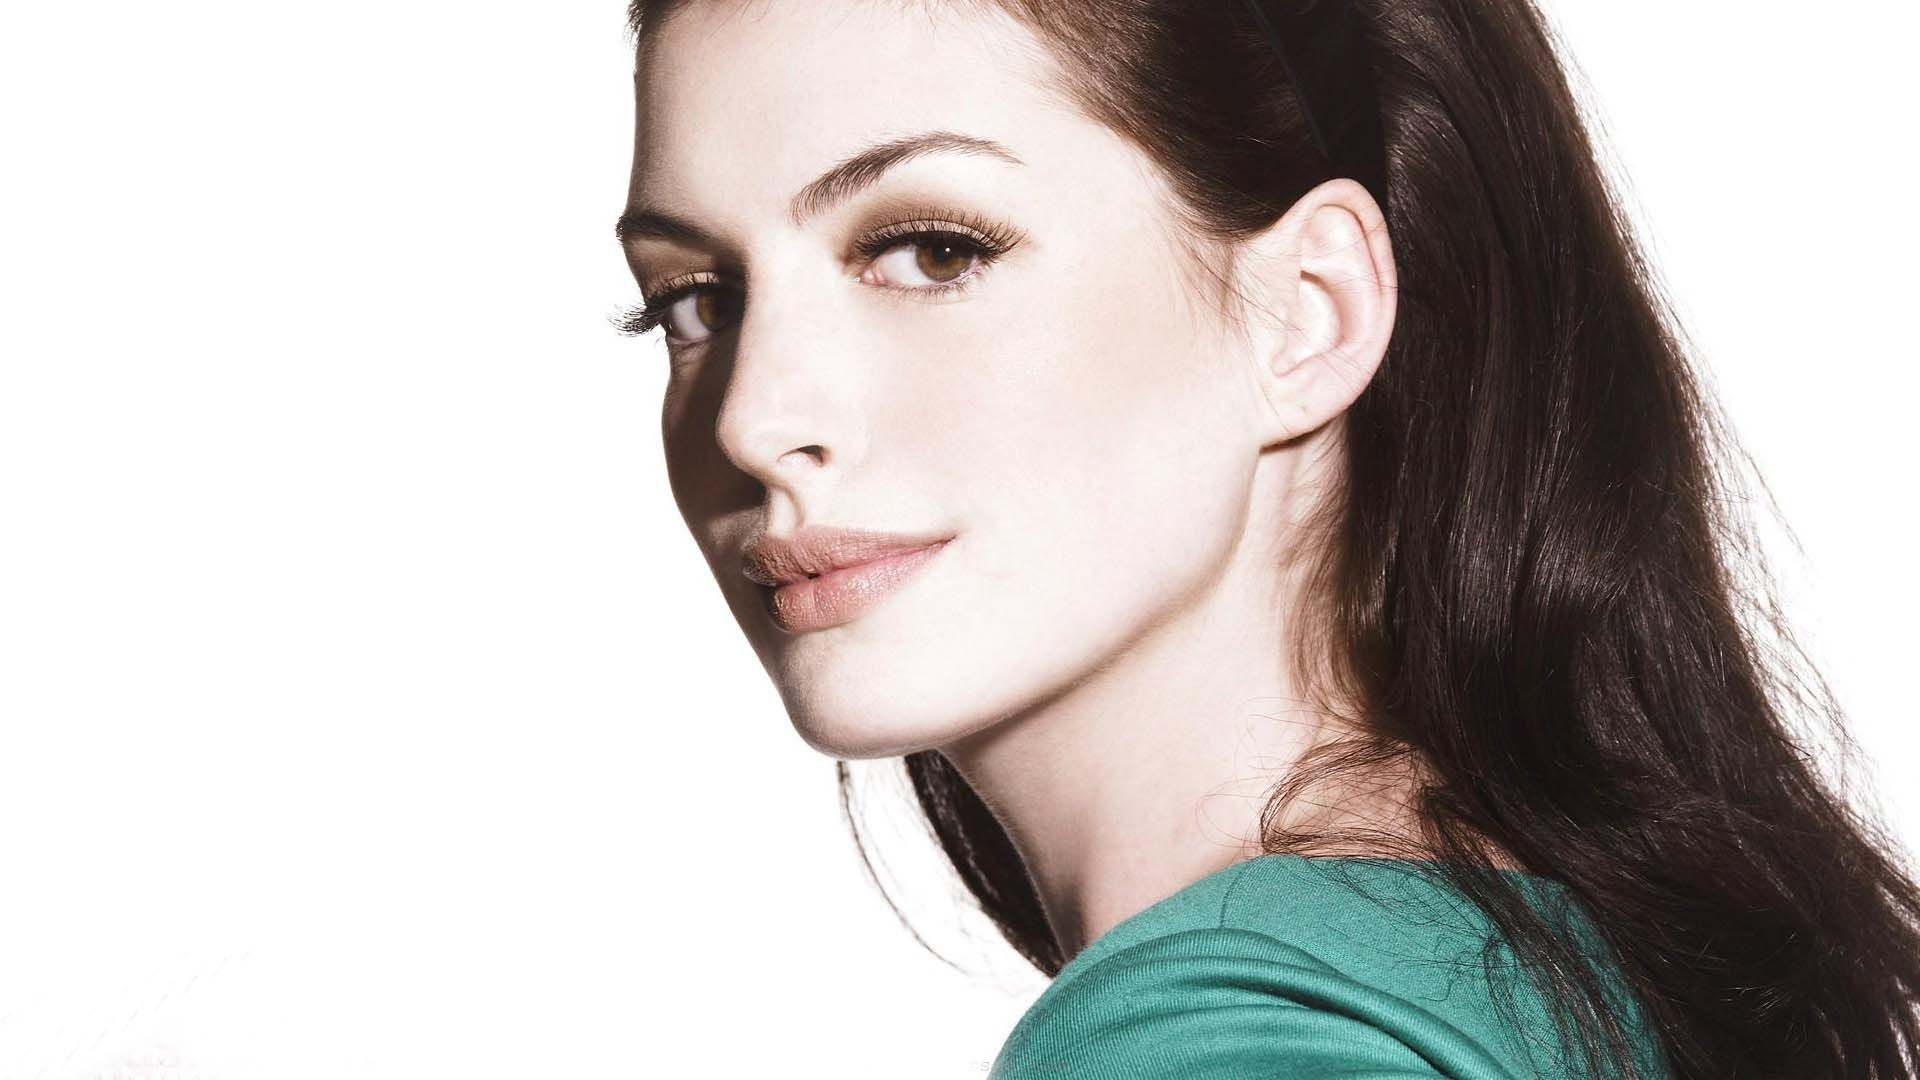 Anne Hathaway Hd Wallpapers Hd Wallpapers Of Anne Hathaway